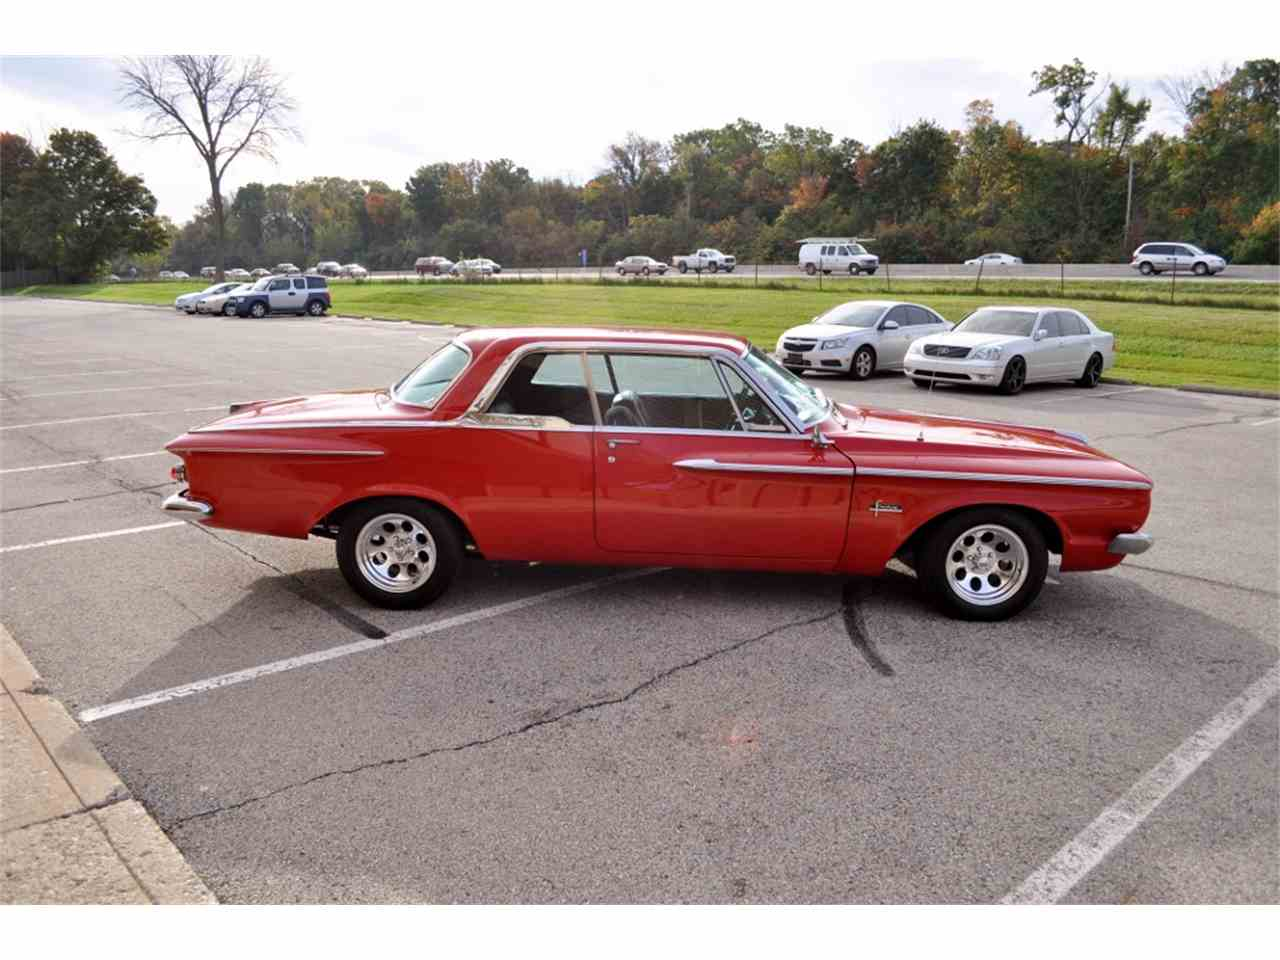 Used Cars For Sale In Indiana Under 5000 >> 1962 Plymouth Fury for Sale | ClassicCars.com | CC-977261